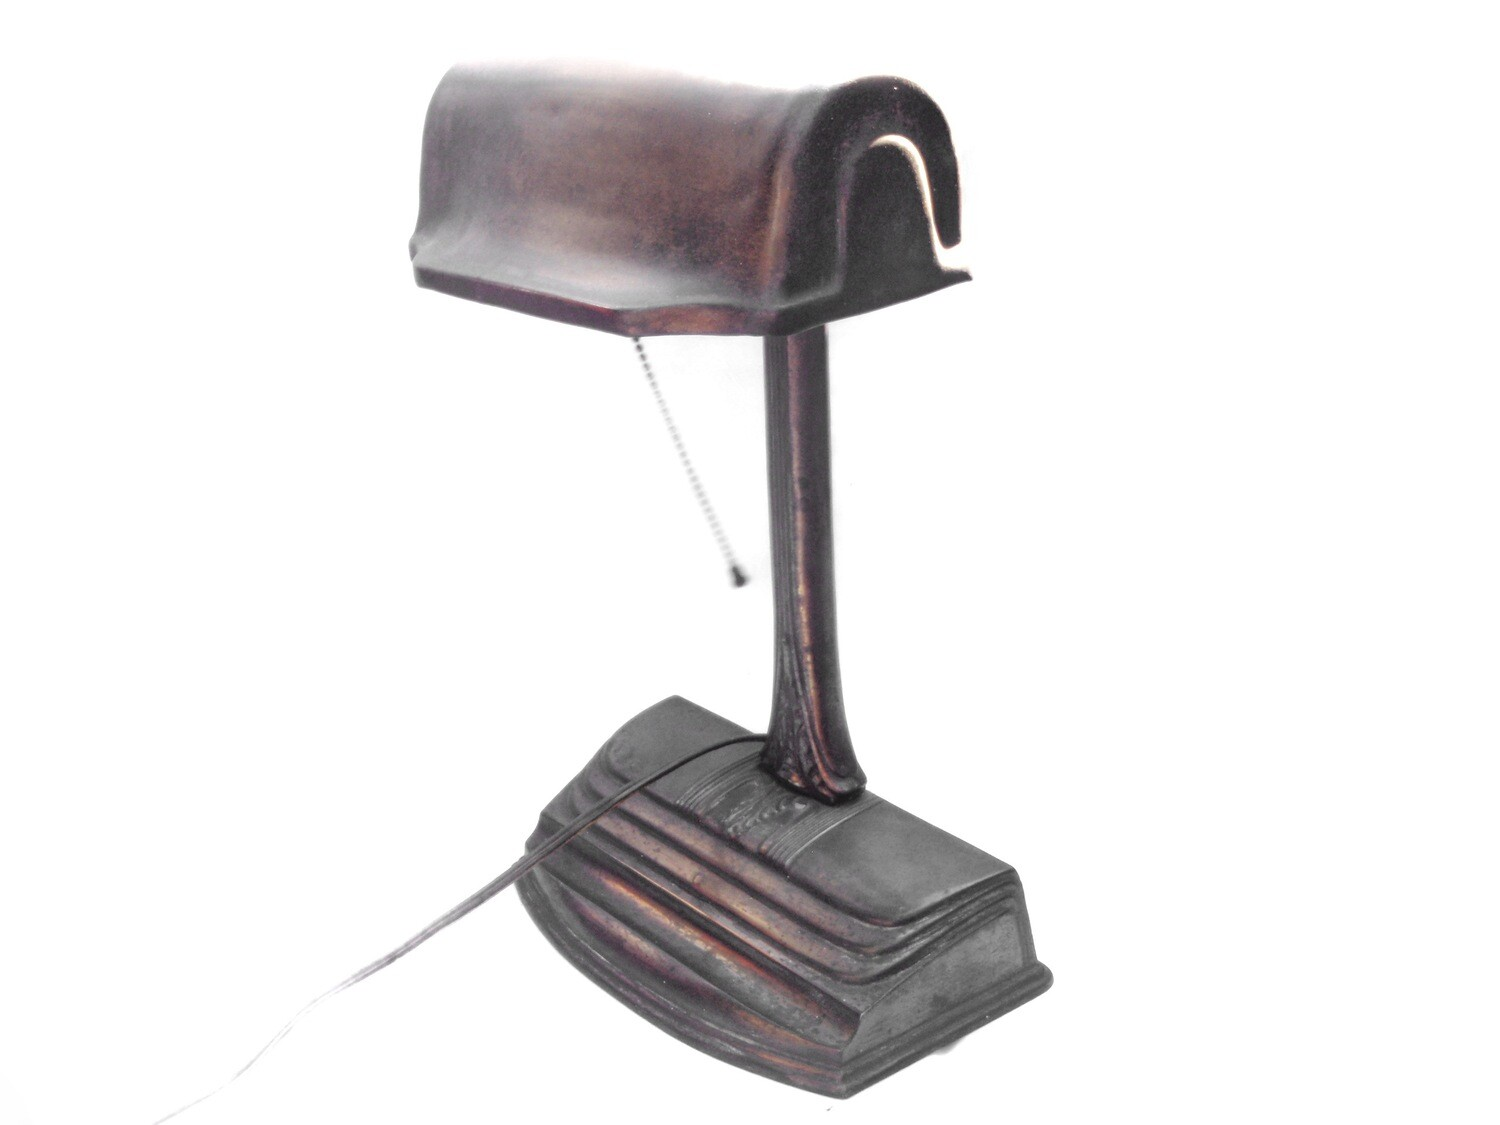 Art Nouveau Bankers Table Lamp and Pen Holder